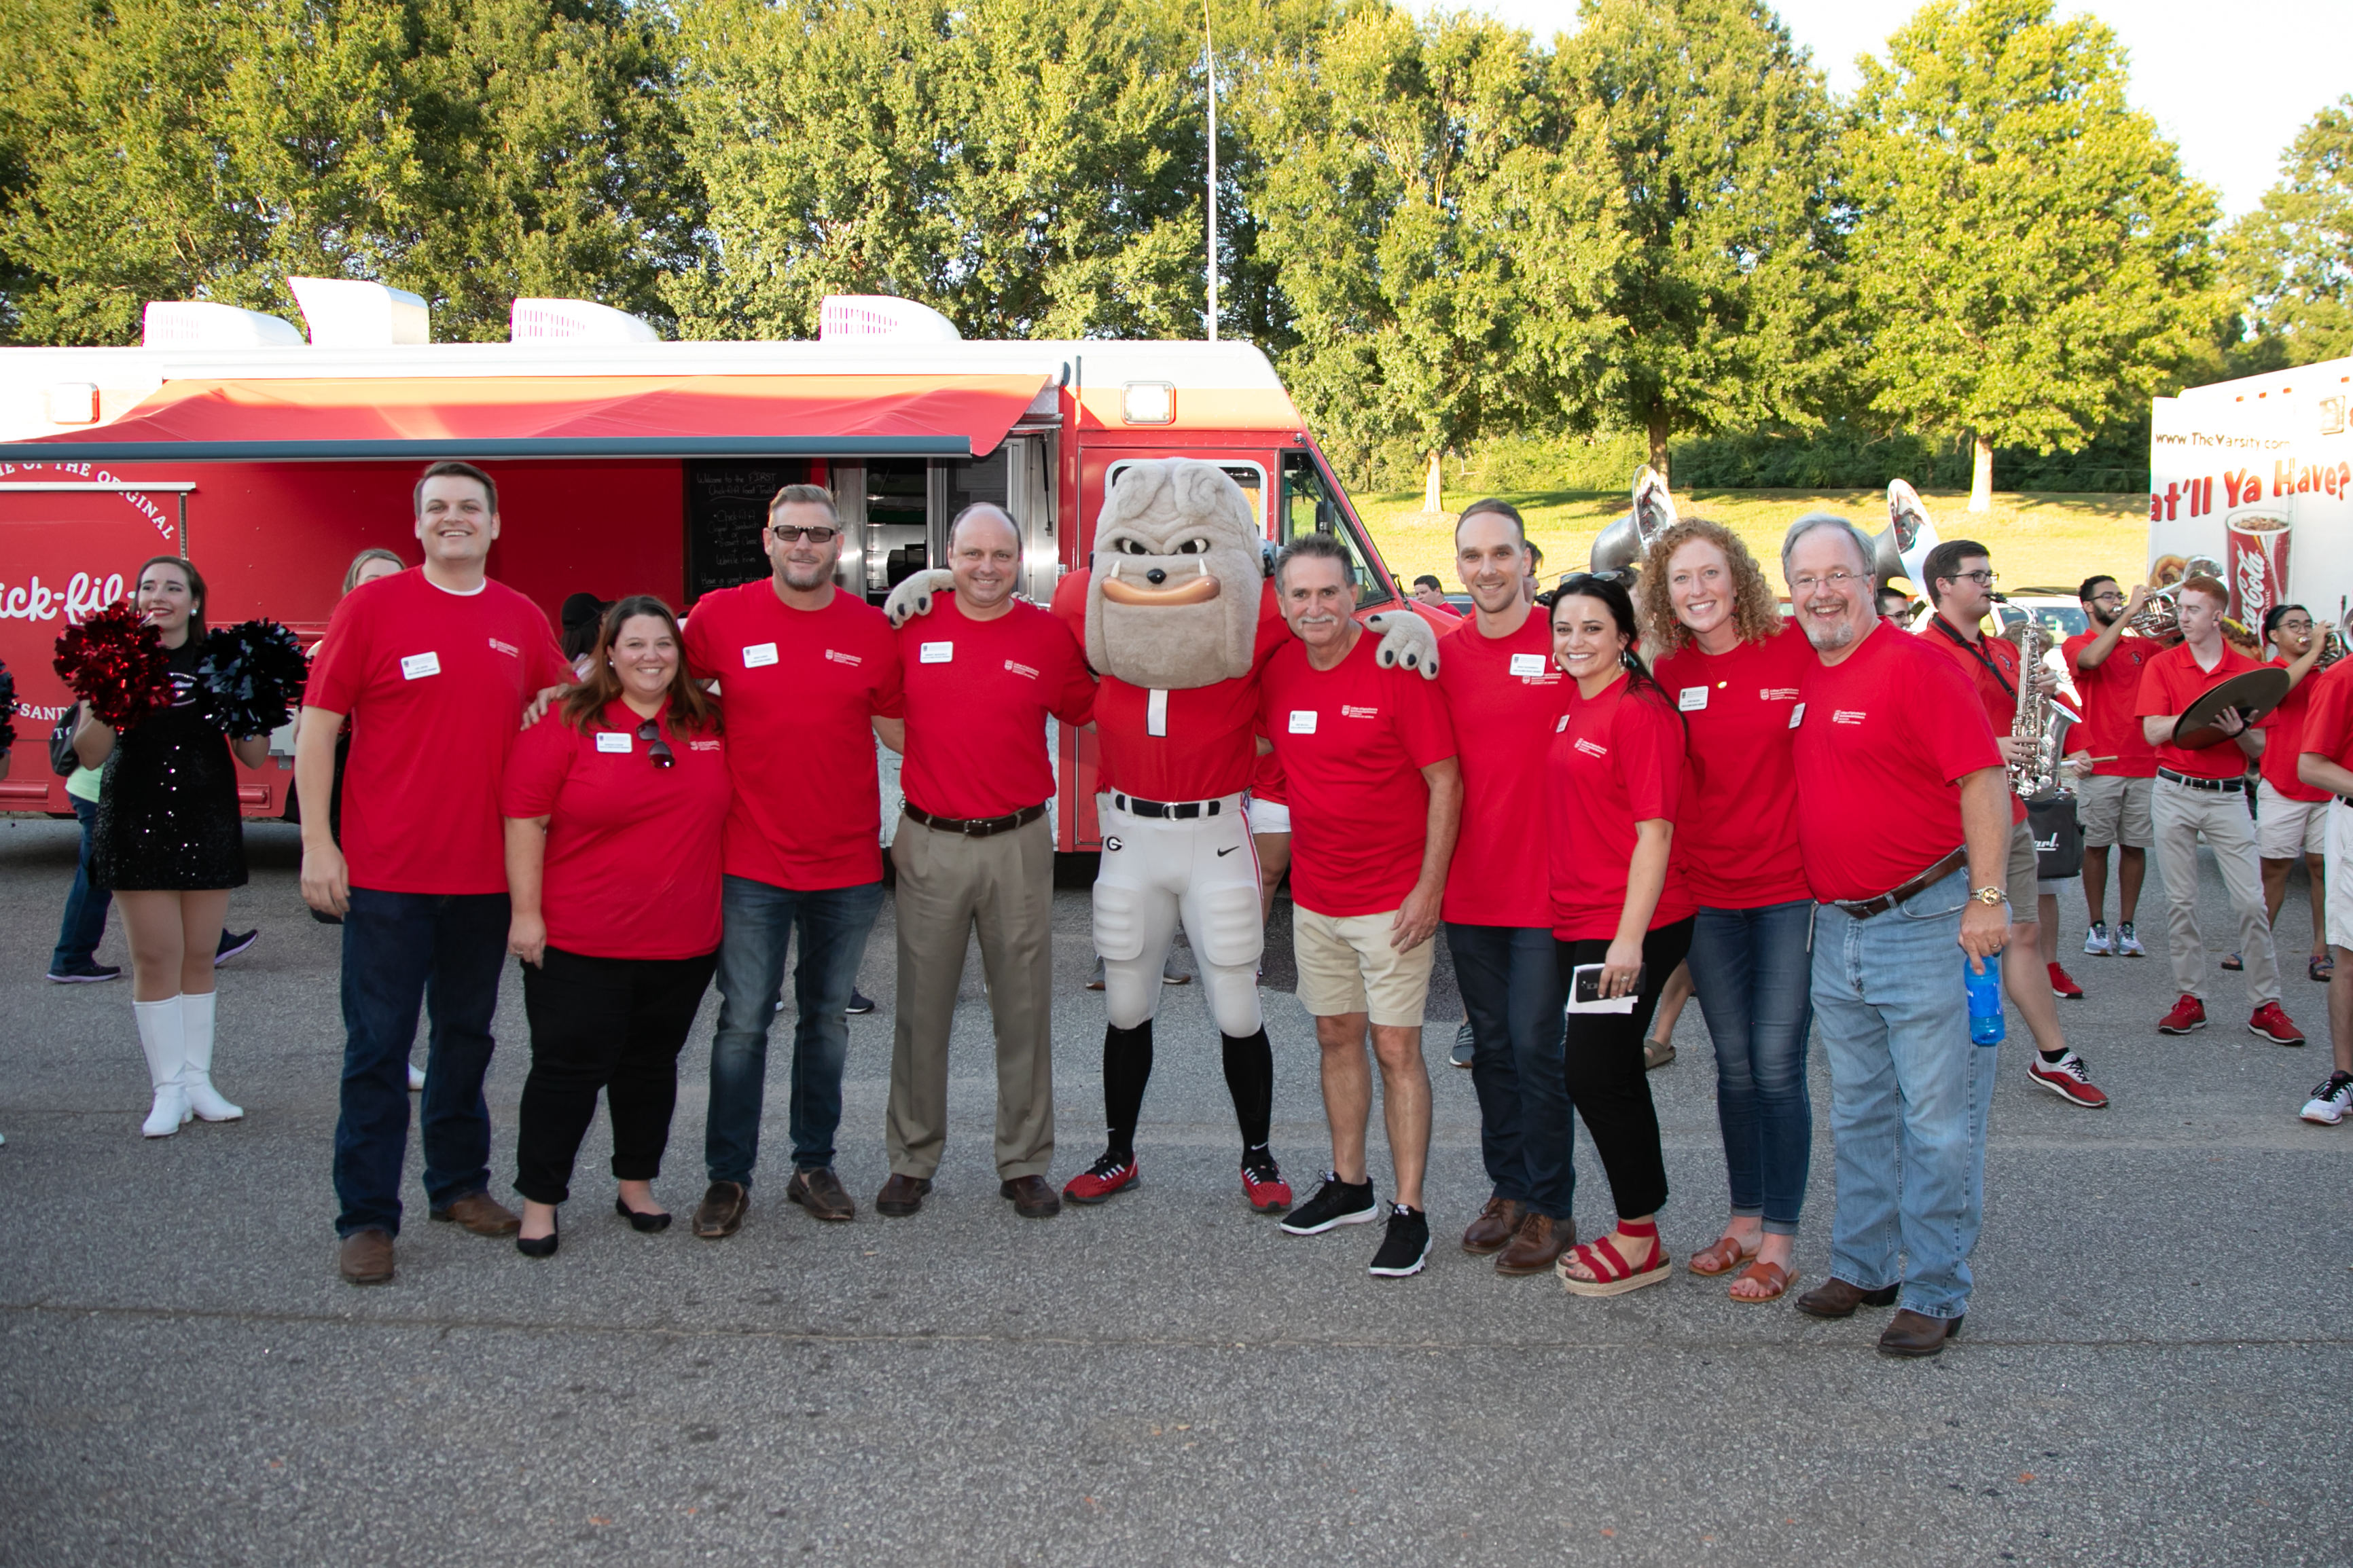 The CAES Alumni Association poses with UGA mascot Hairy Dawg.